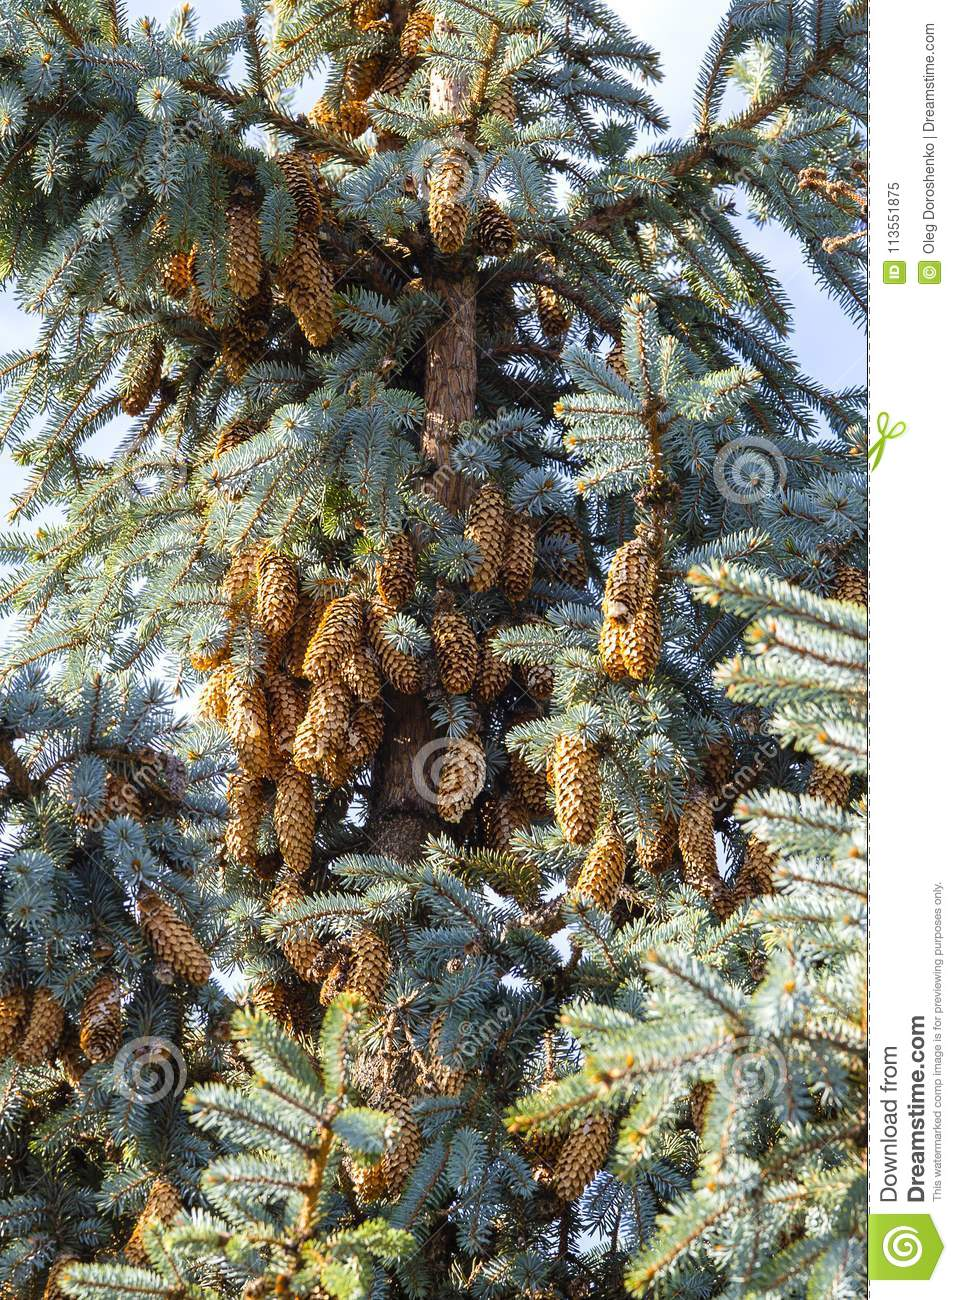 Blue spruce tree close-up. Christmas tree. Pine tree or fir tree with cones in Carpathian mountains